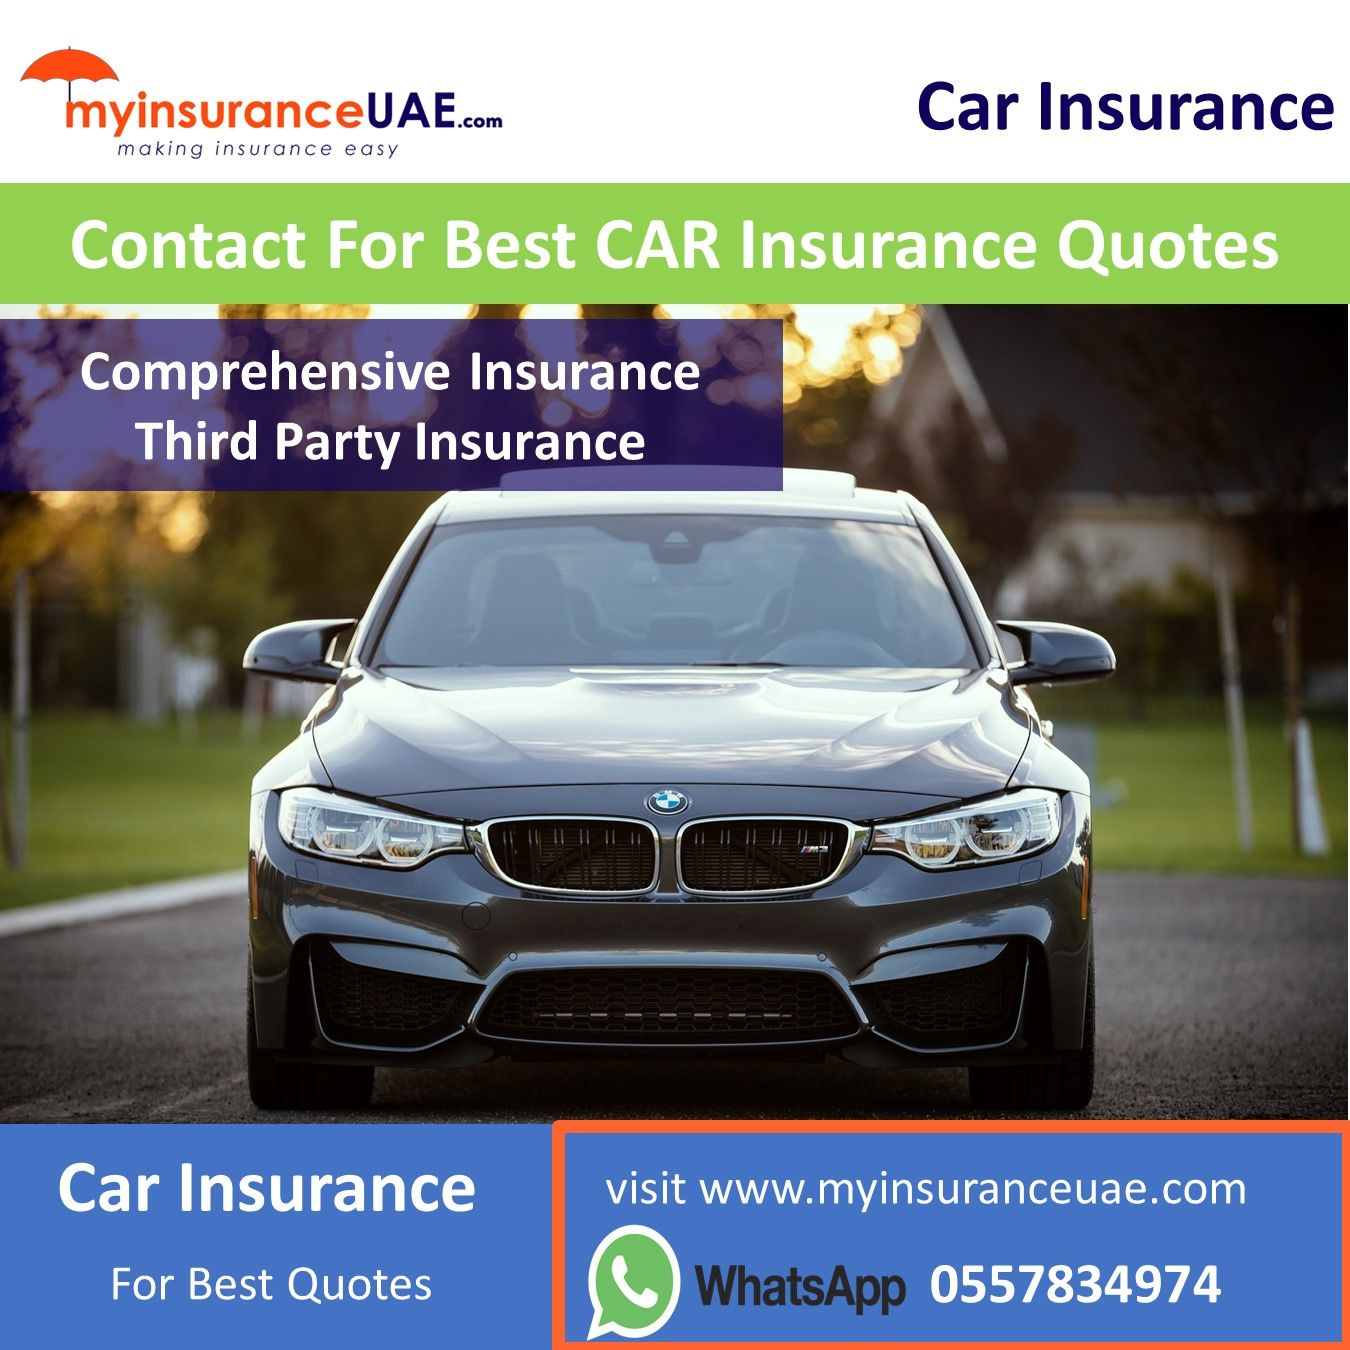 Visit the website www.myinsuranceuae.com or whatsapp or ...